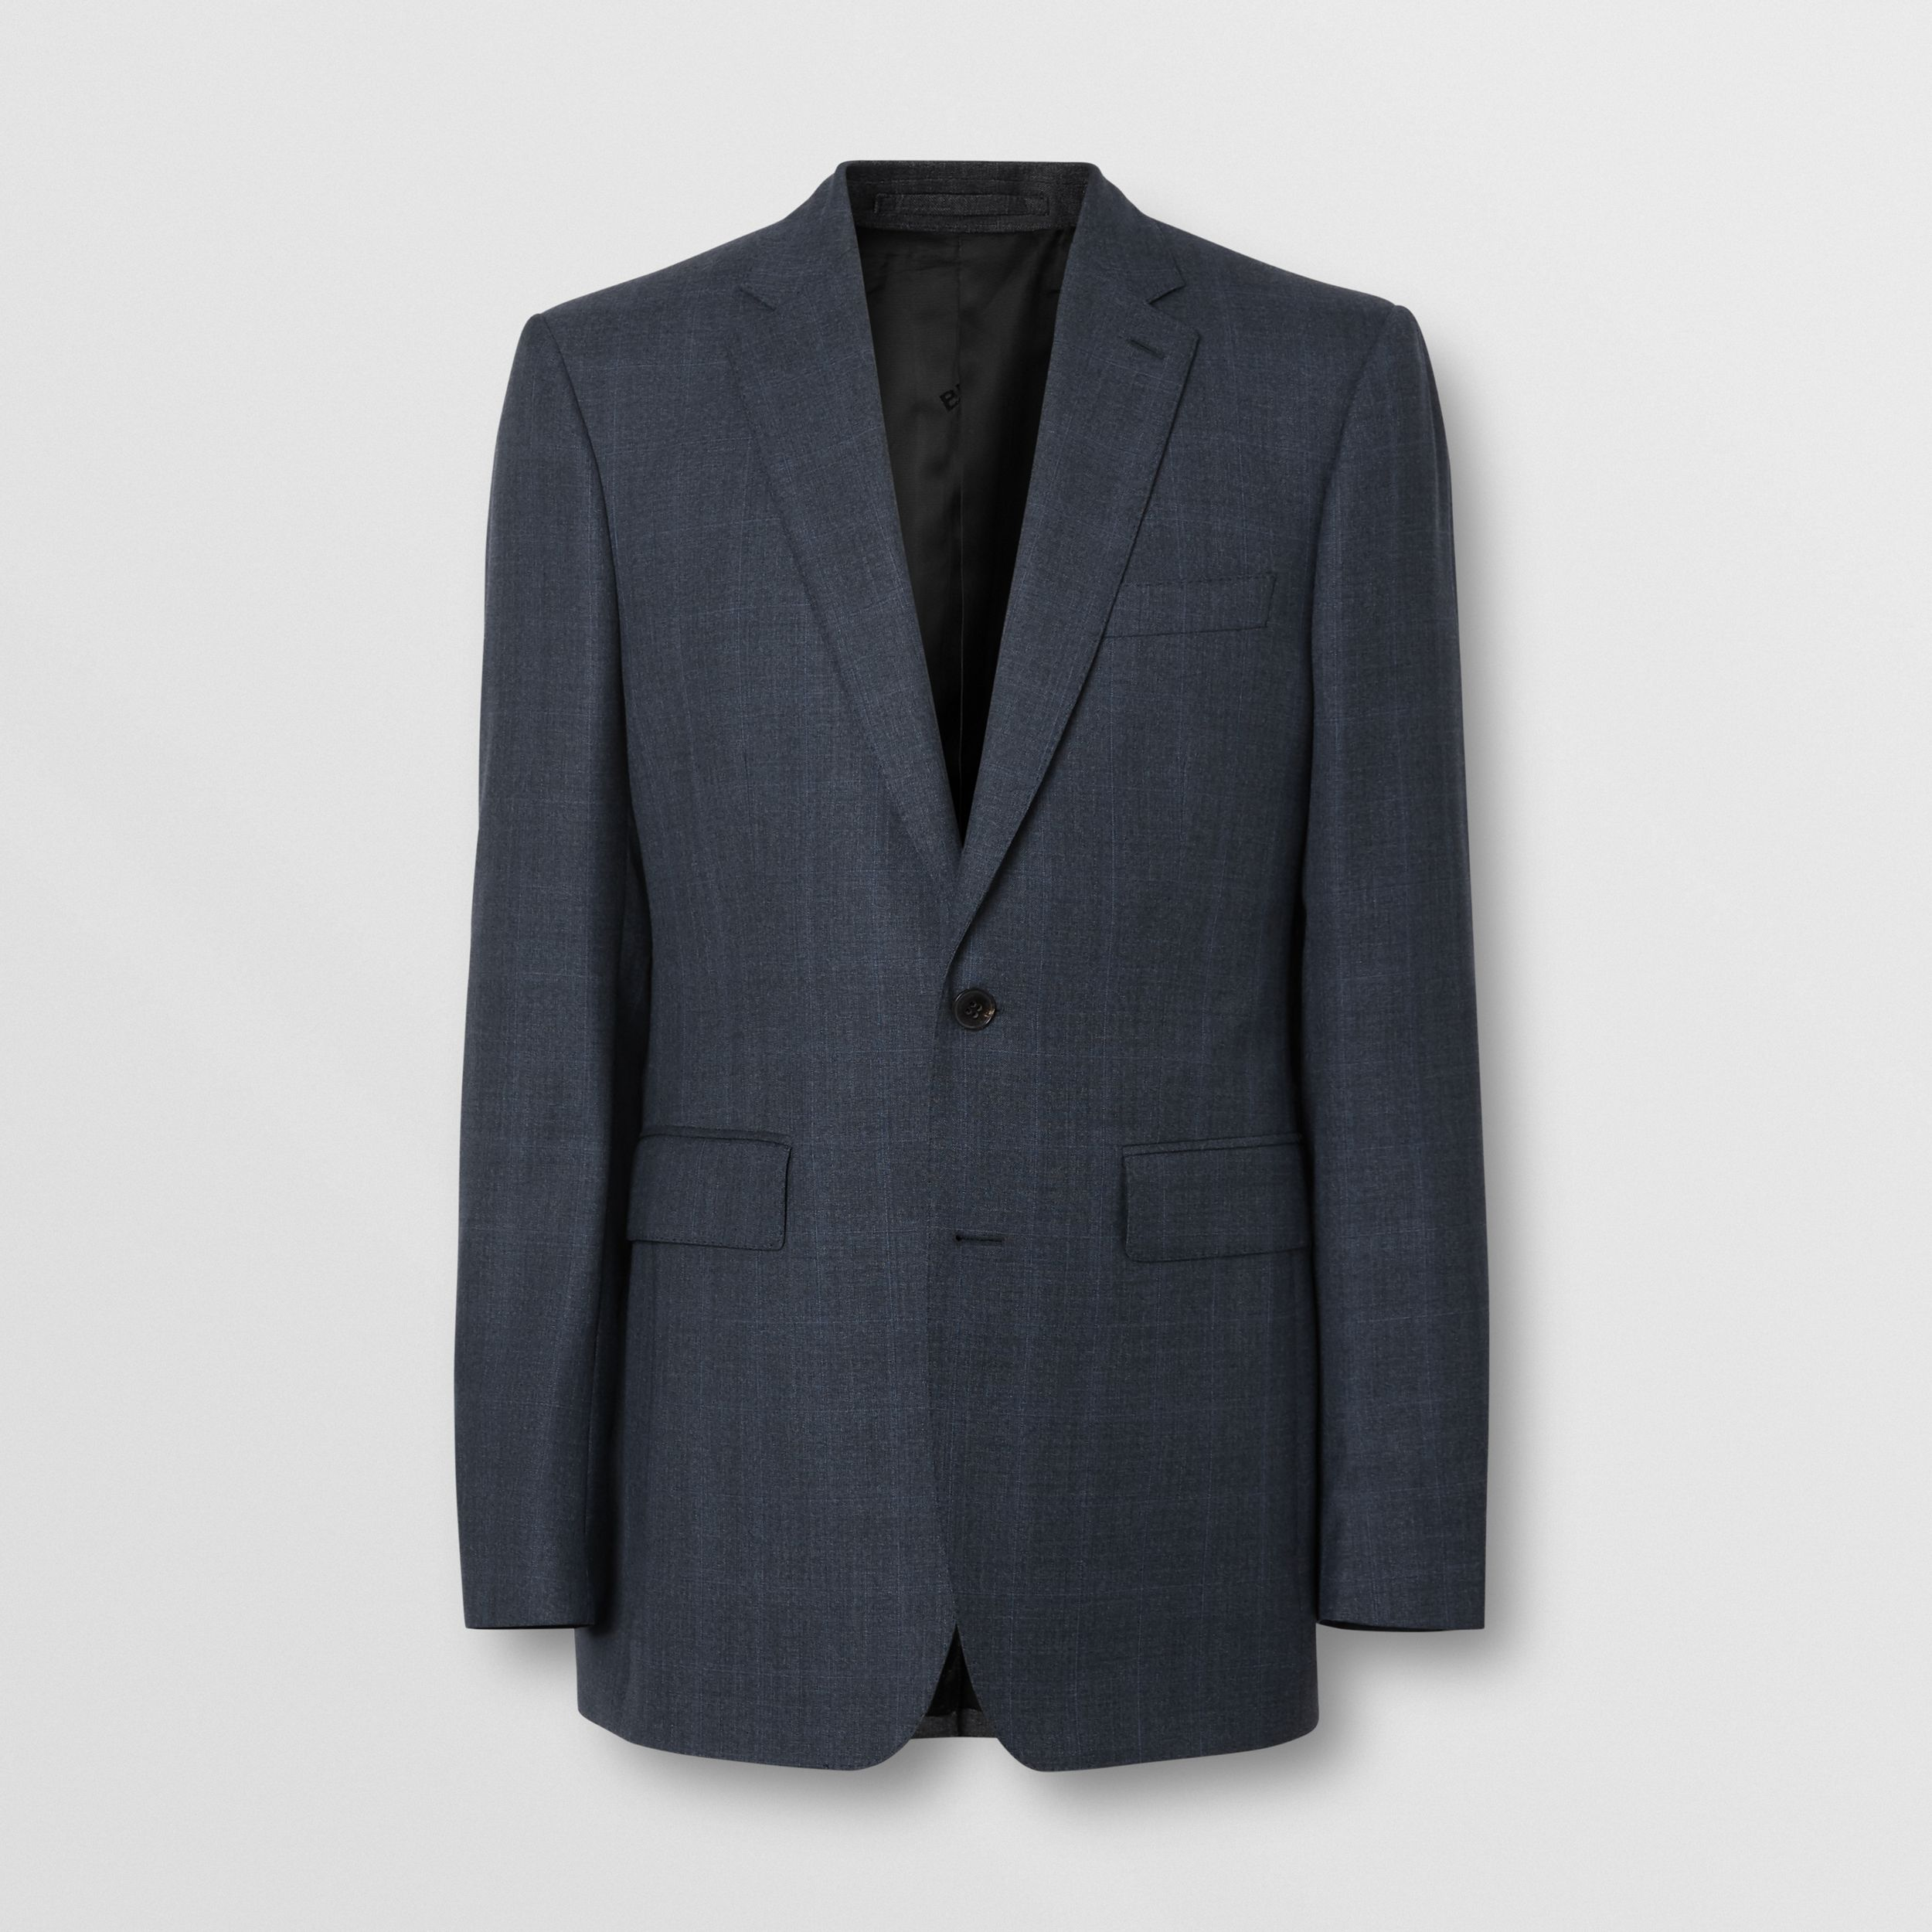 Classic Fit Windowpane Check Wool Suit in Light Navy - Men | Burberry - 4